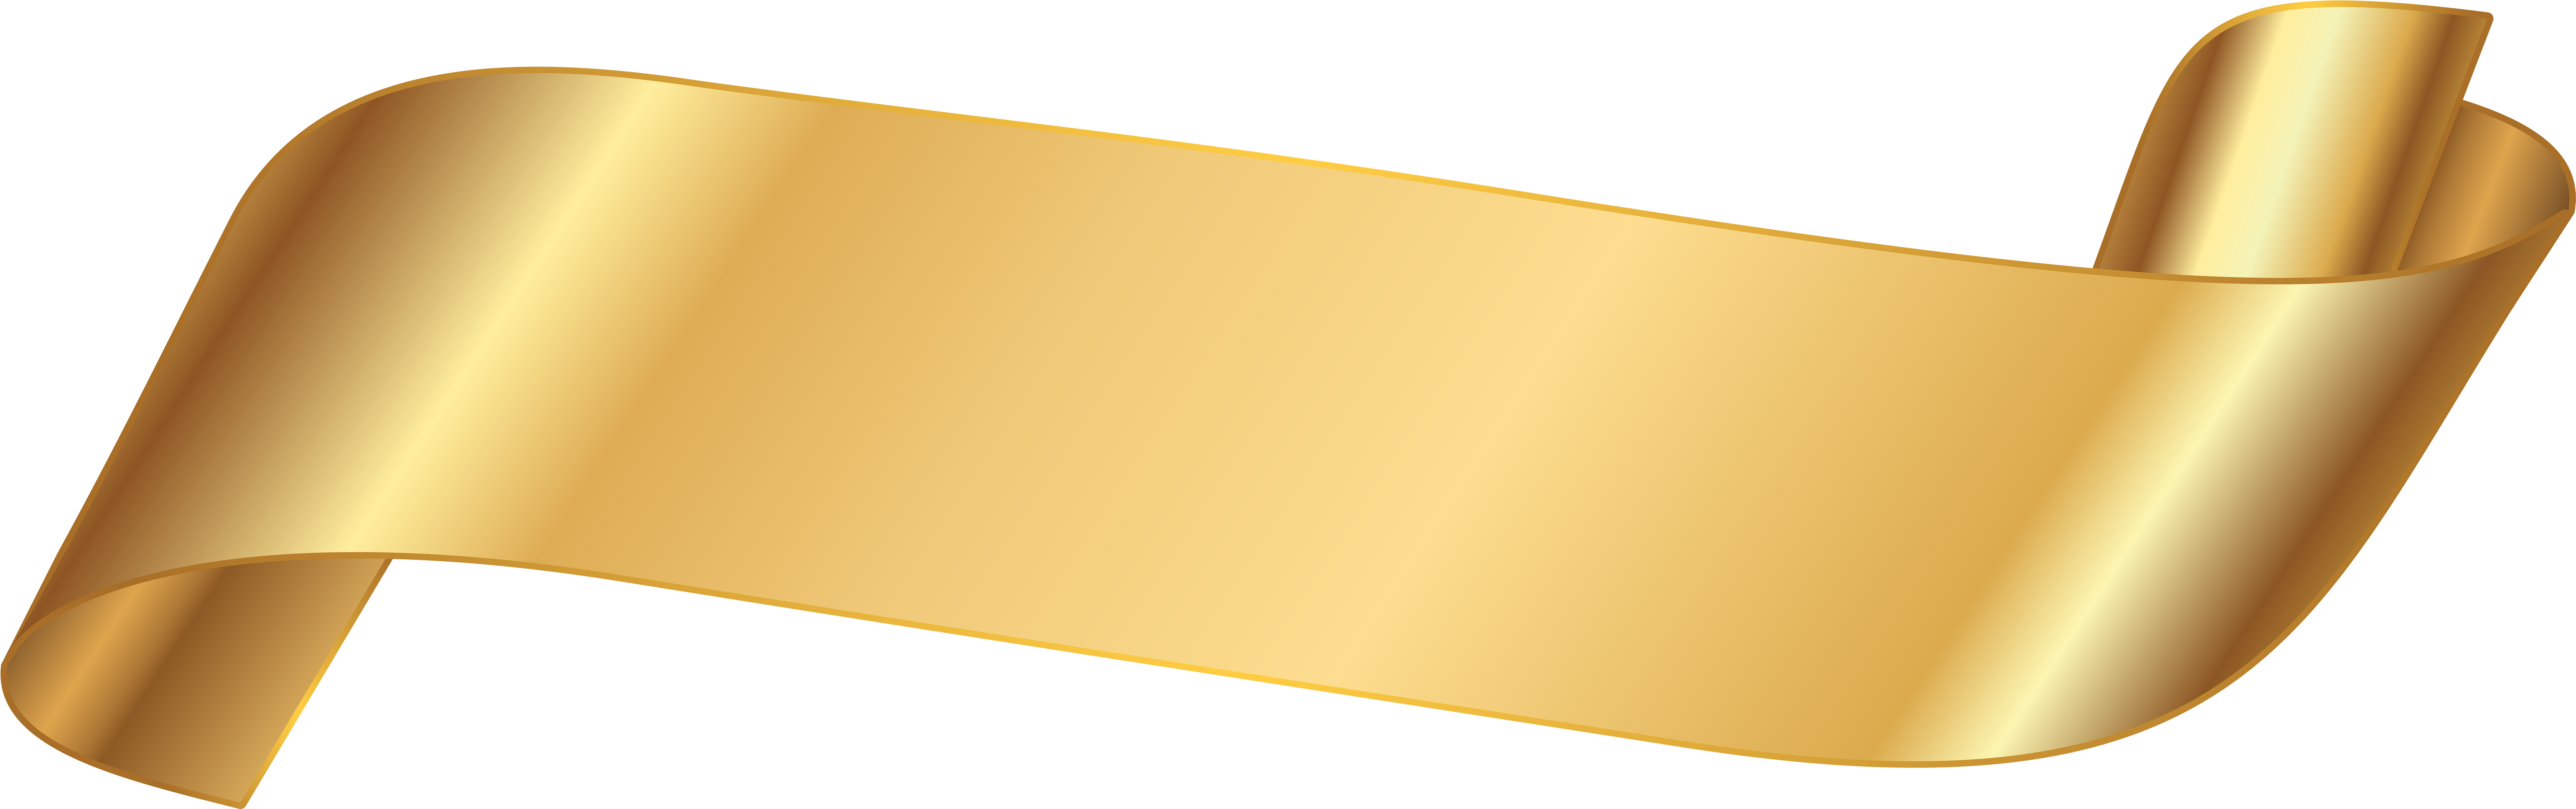 Black And Gold Hd Png - HD Gold Ribbon Banner Png , Png Download - Gold Ribbon Transparent ...